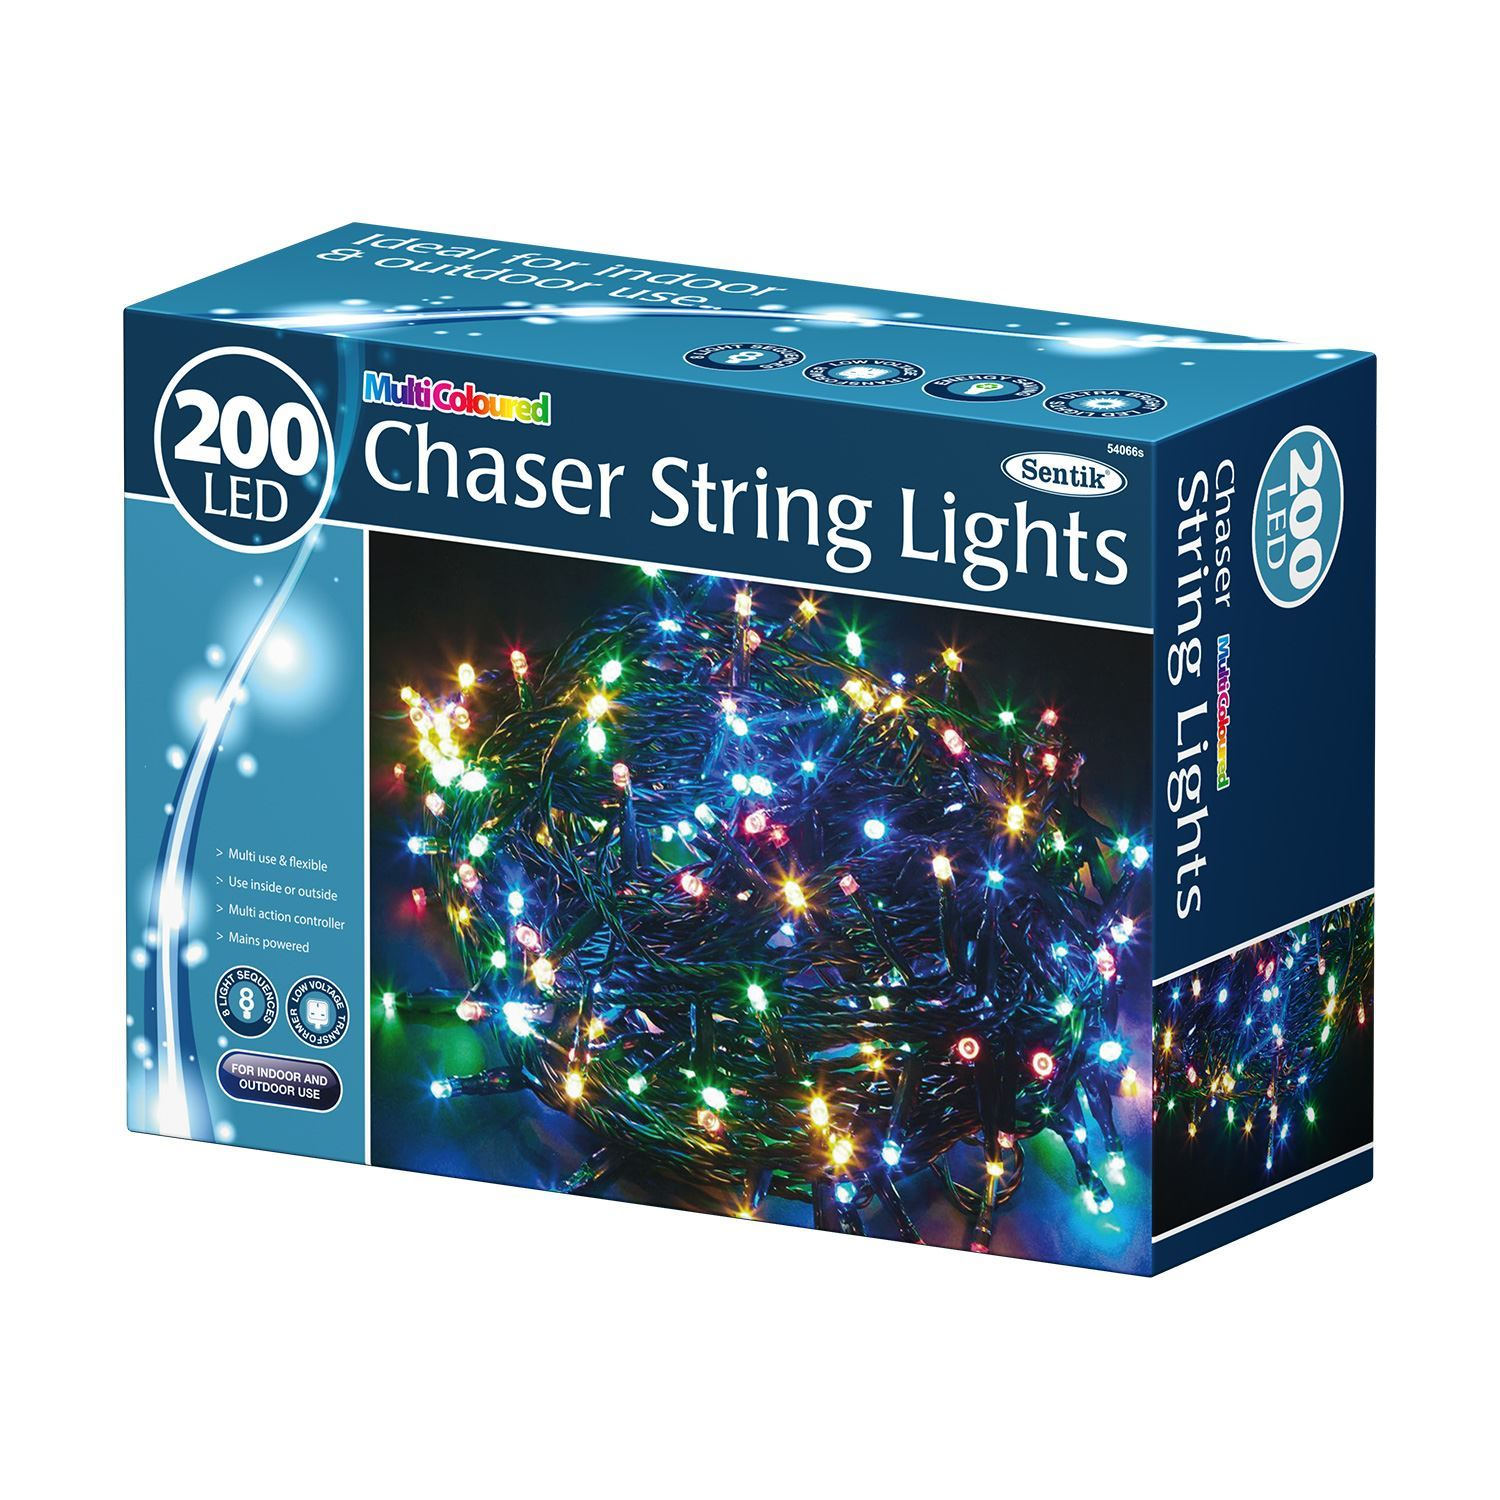 Chaser Christmas Lights.Details About Mutli Coloured Led Chaser Fairy String Lights Xmas Christmas Wedding Party Light